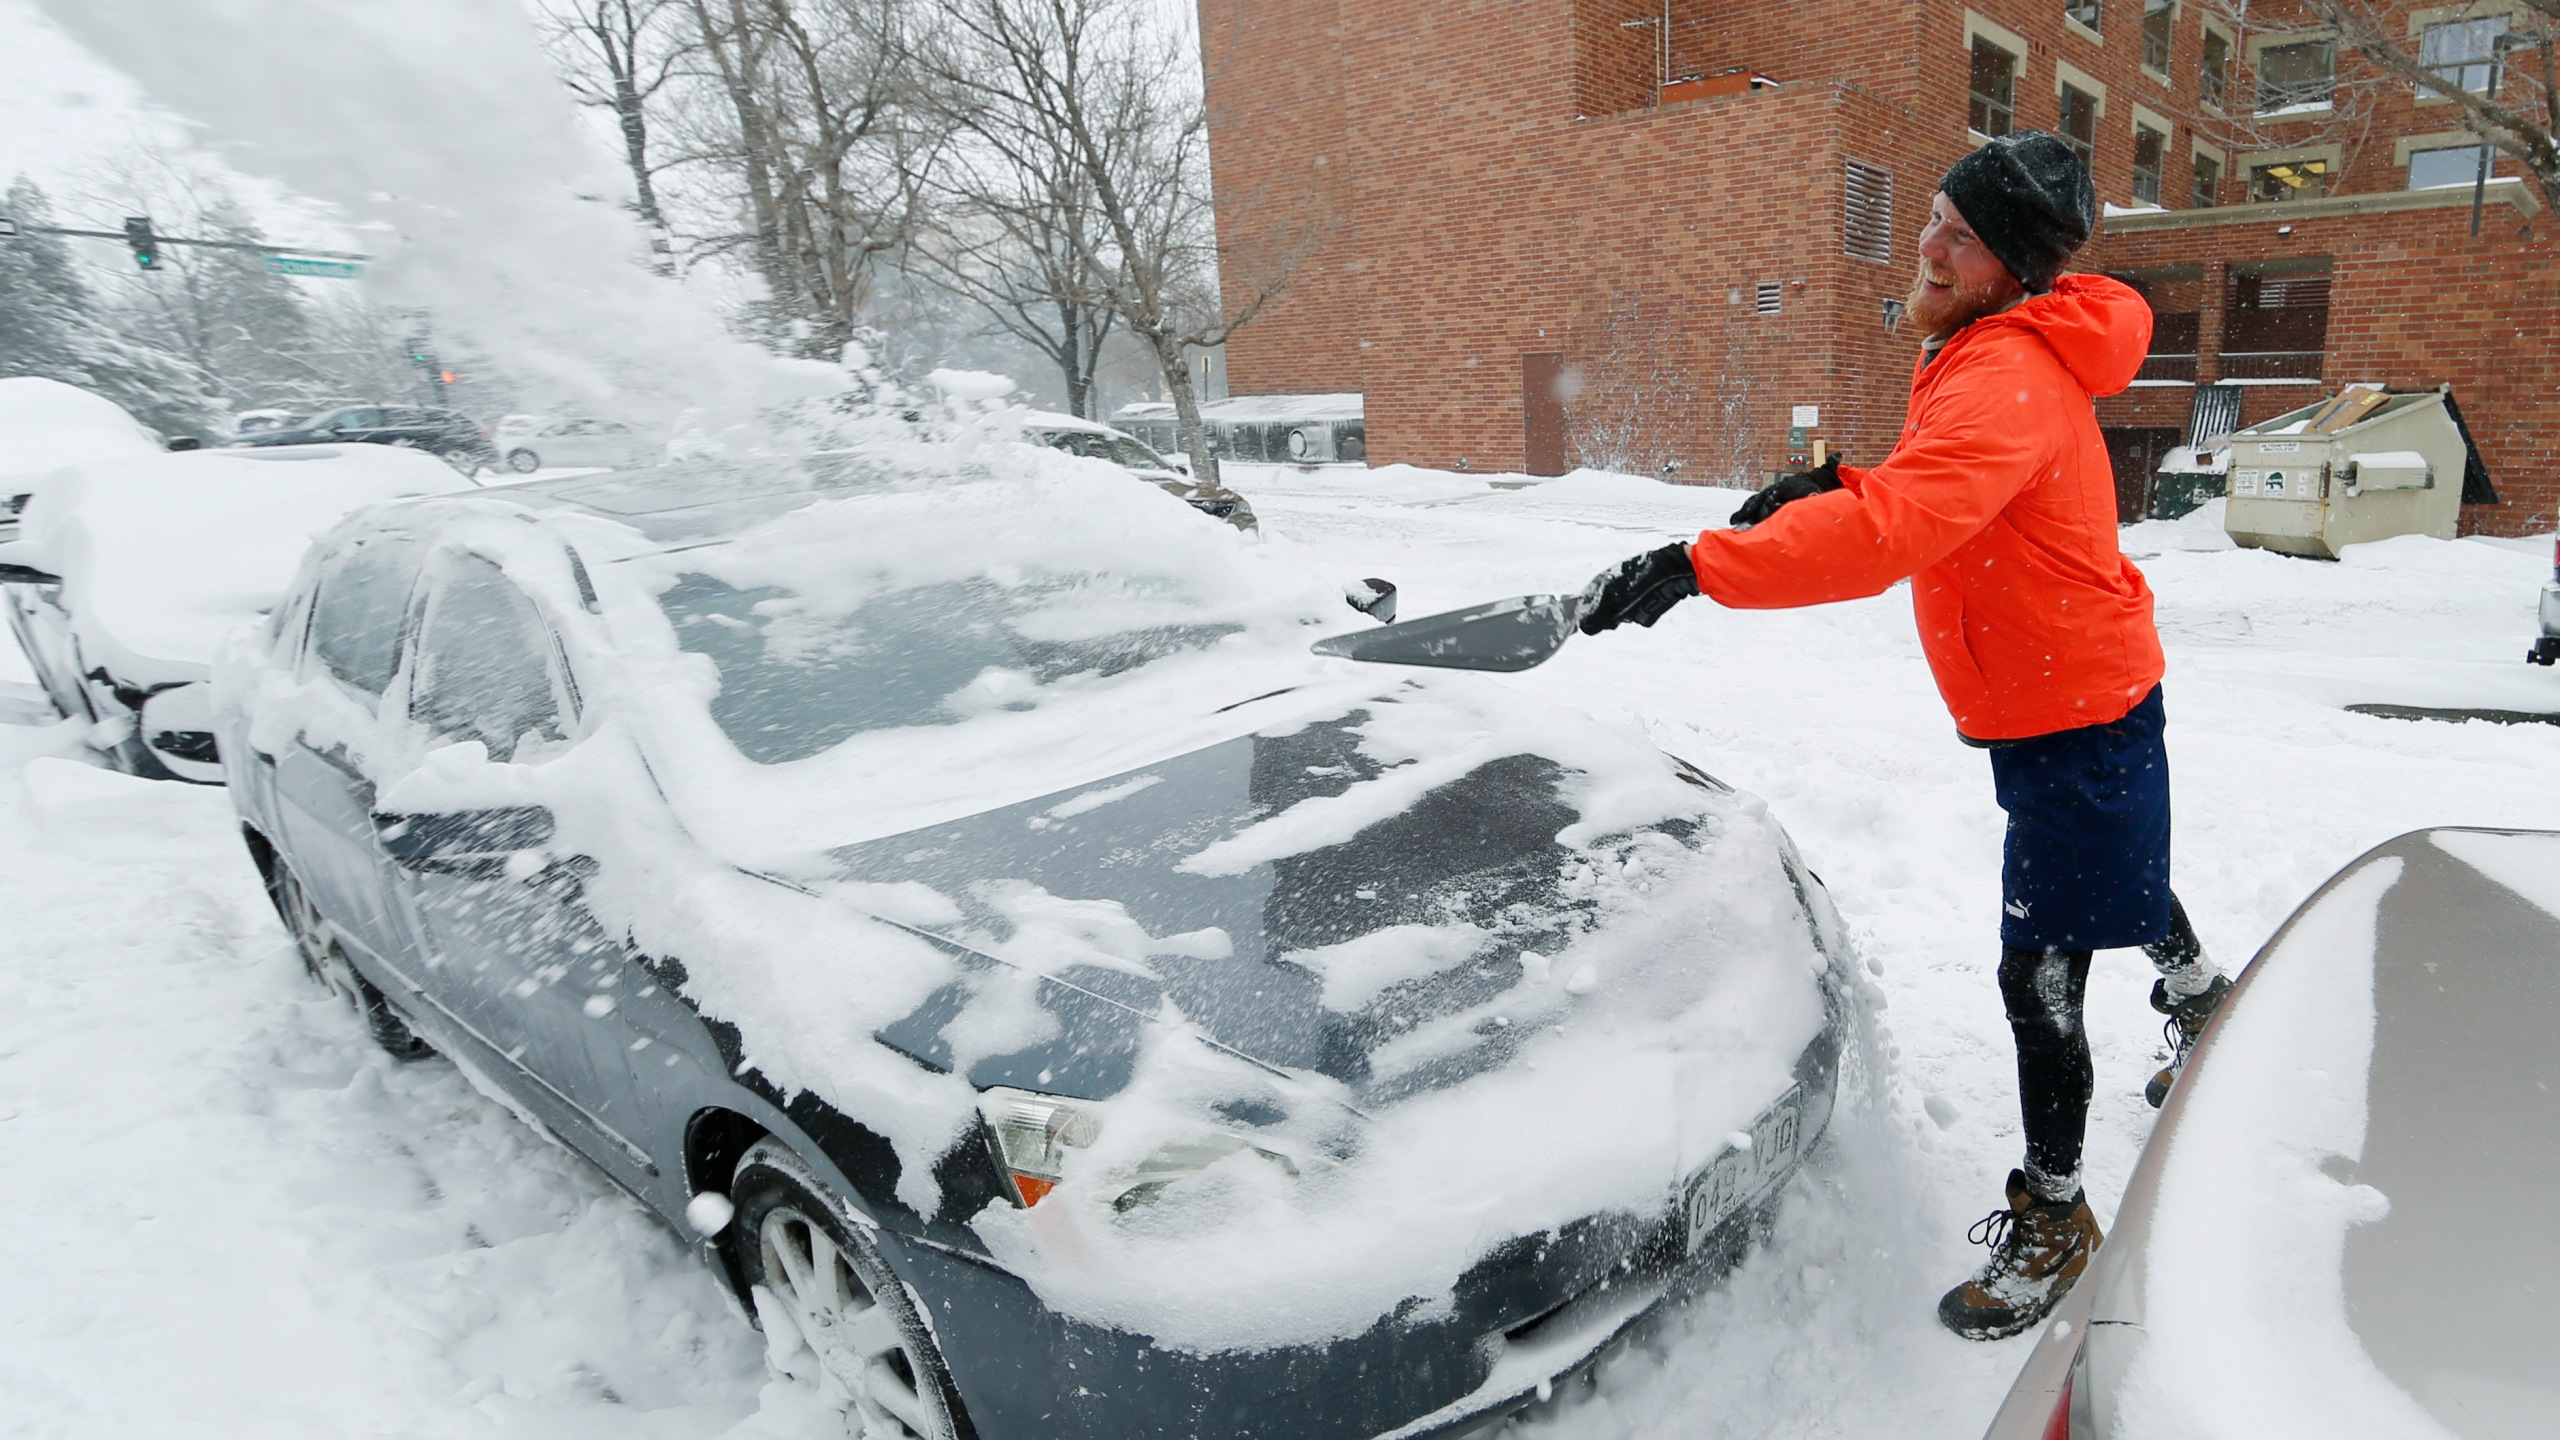 John Malsbary launches a shovelful of snow over his car as he tries to dig the vehicle out of a curbside parking spot as high winds drive granu_334494